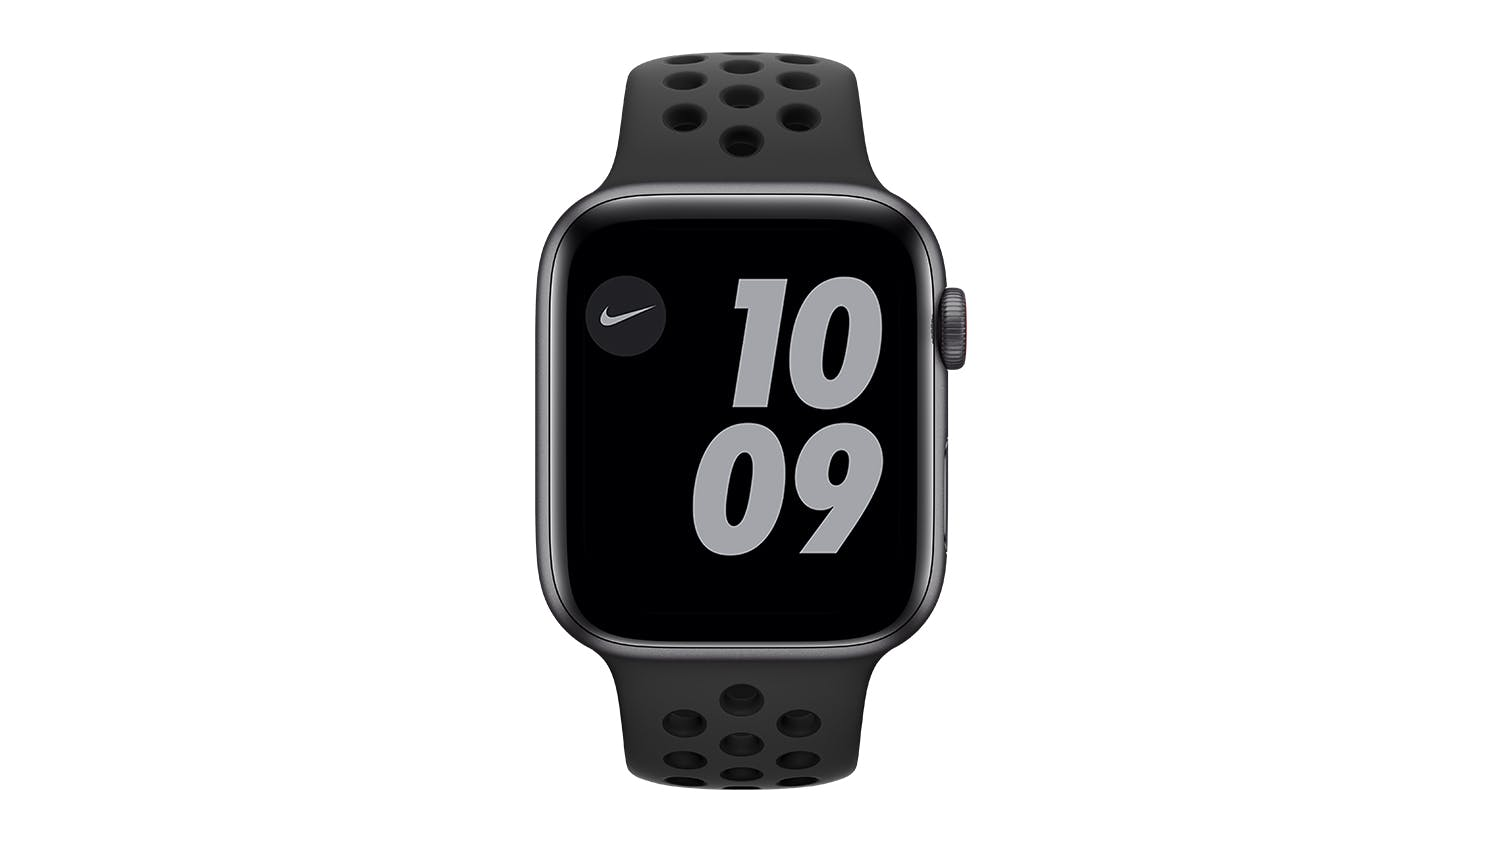 Apple Watch Nike SE (GPS+Cellular) 44mm Space Grey Aluminium Case with Anthracite/Black Nike Sport Band